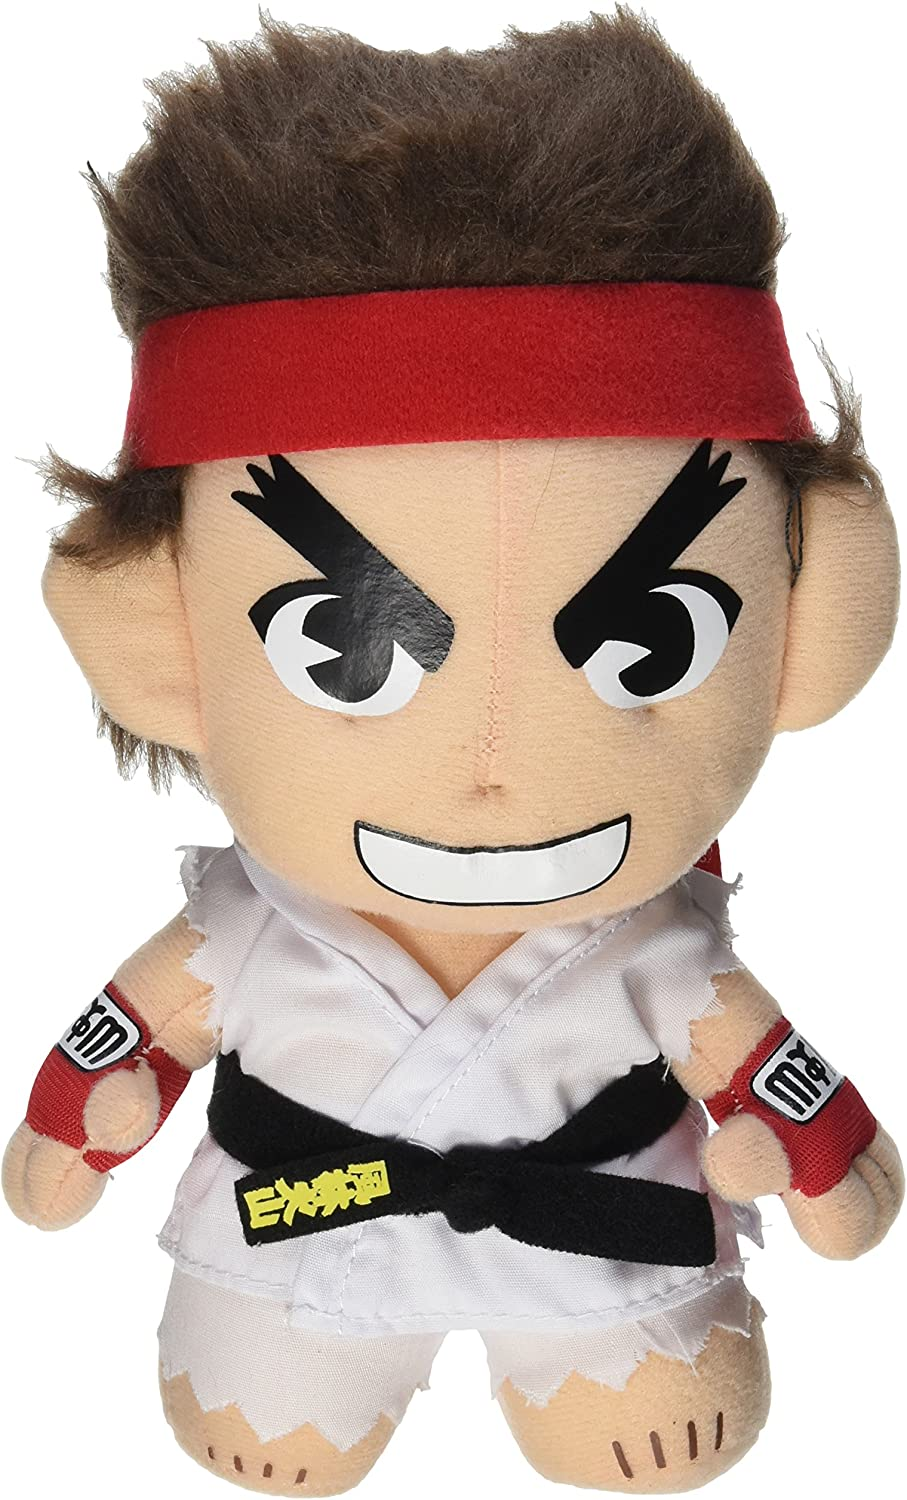 "Street Fighter V Ryu 8/"" Plush Toy"